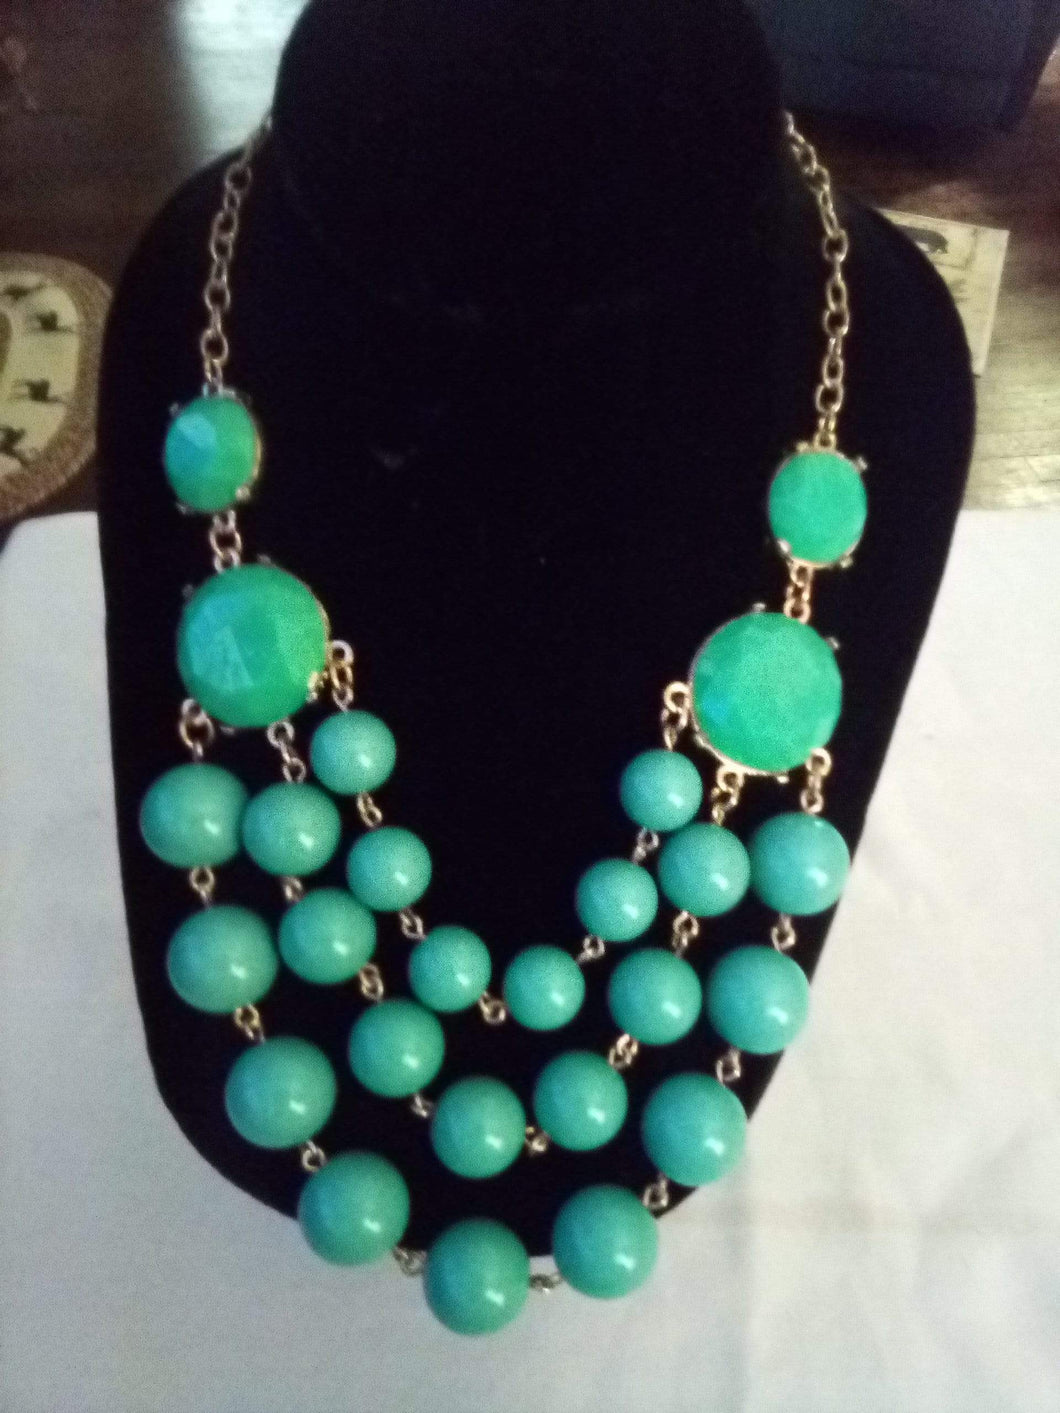 Stunning elegant light blue dressy necklace - B&P'sringsnthings